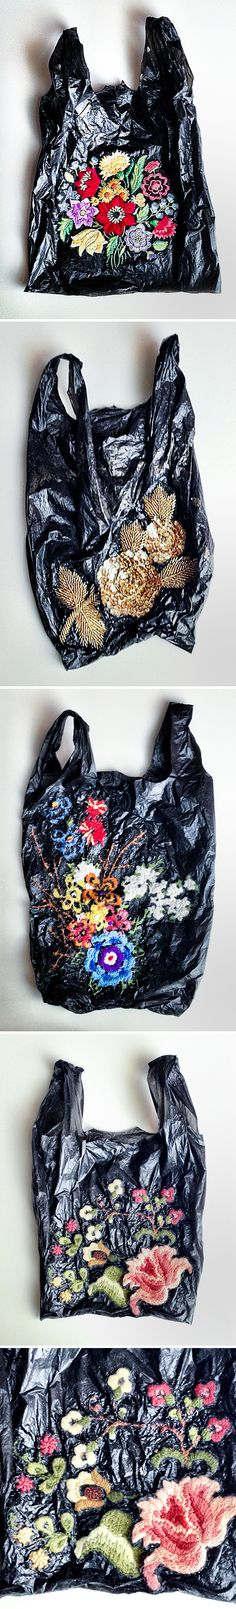 embroidery on plastic bags <3 nicoletta dela brown